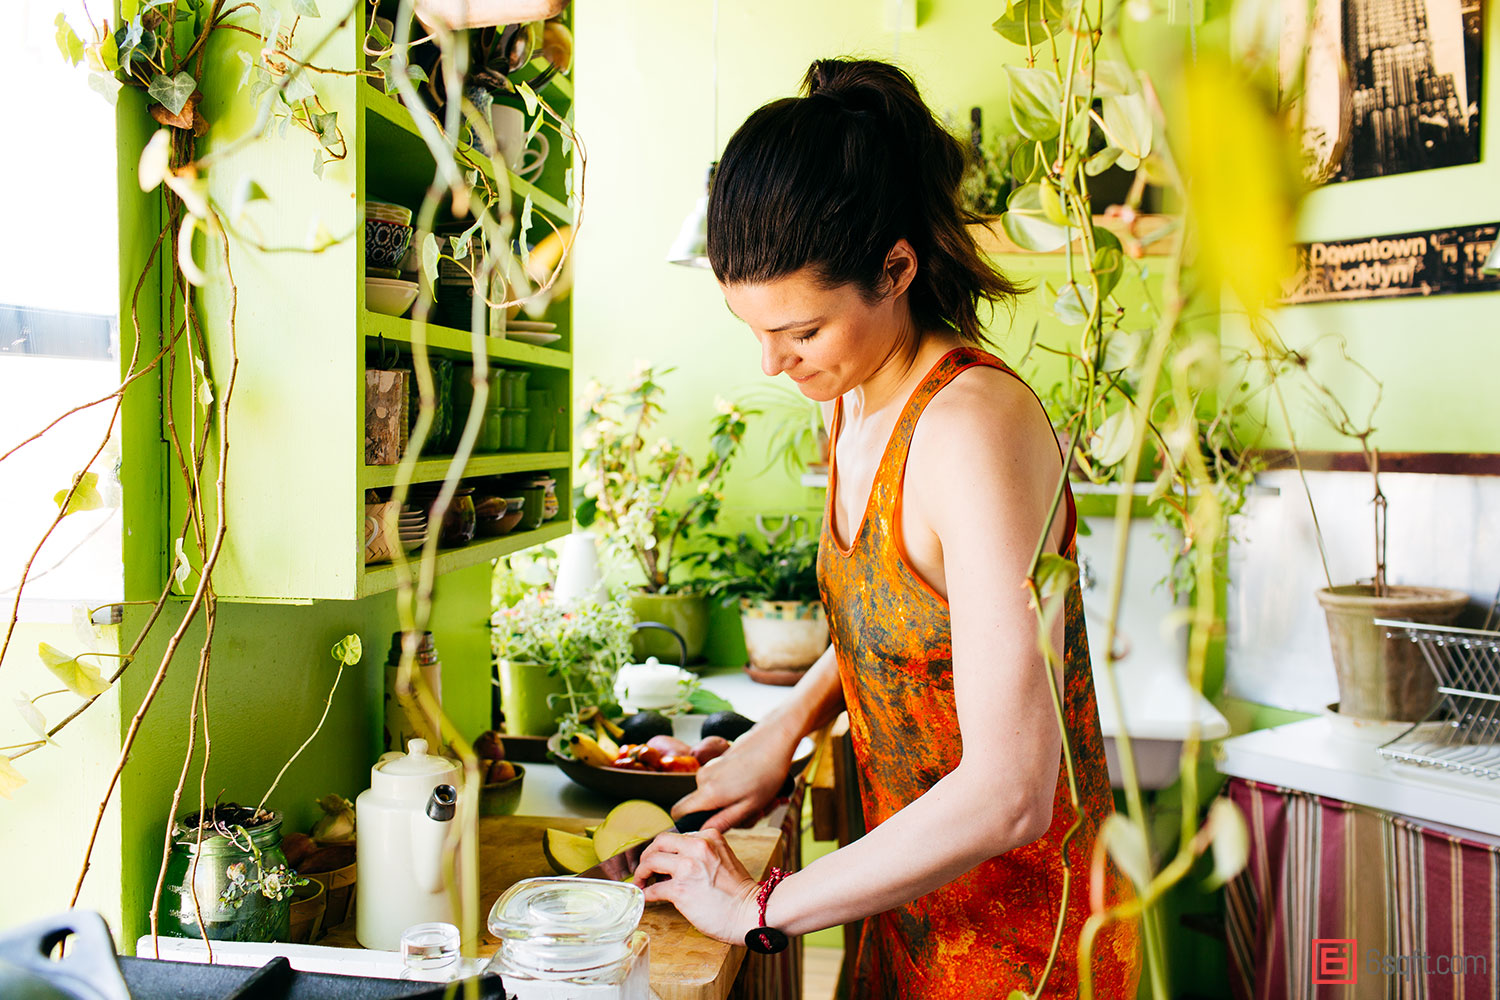 Summer-Rayne-Oakes-Plant-Filled-Apartment-in-Williamsburg-Brooklyn-kitchen-cutting